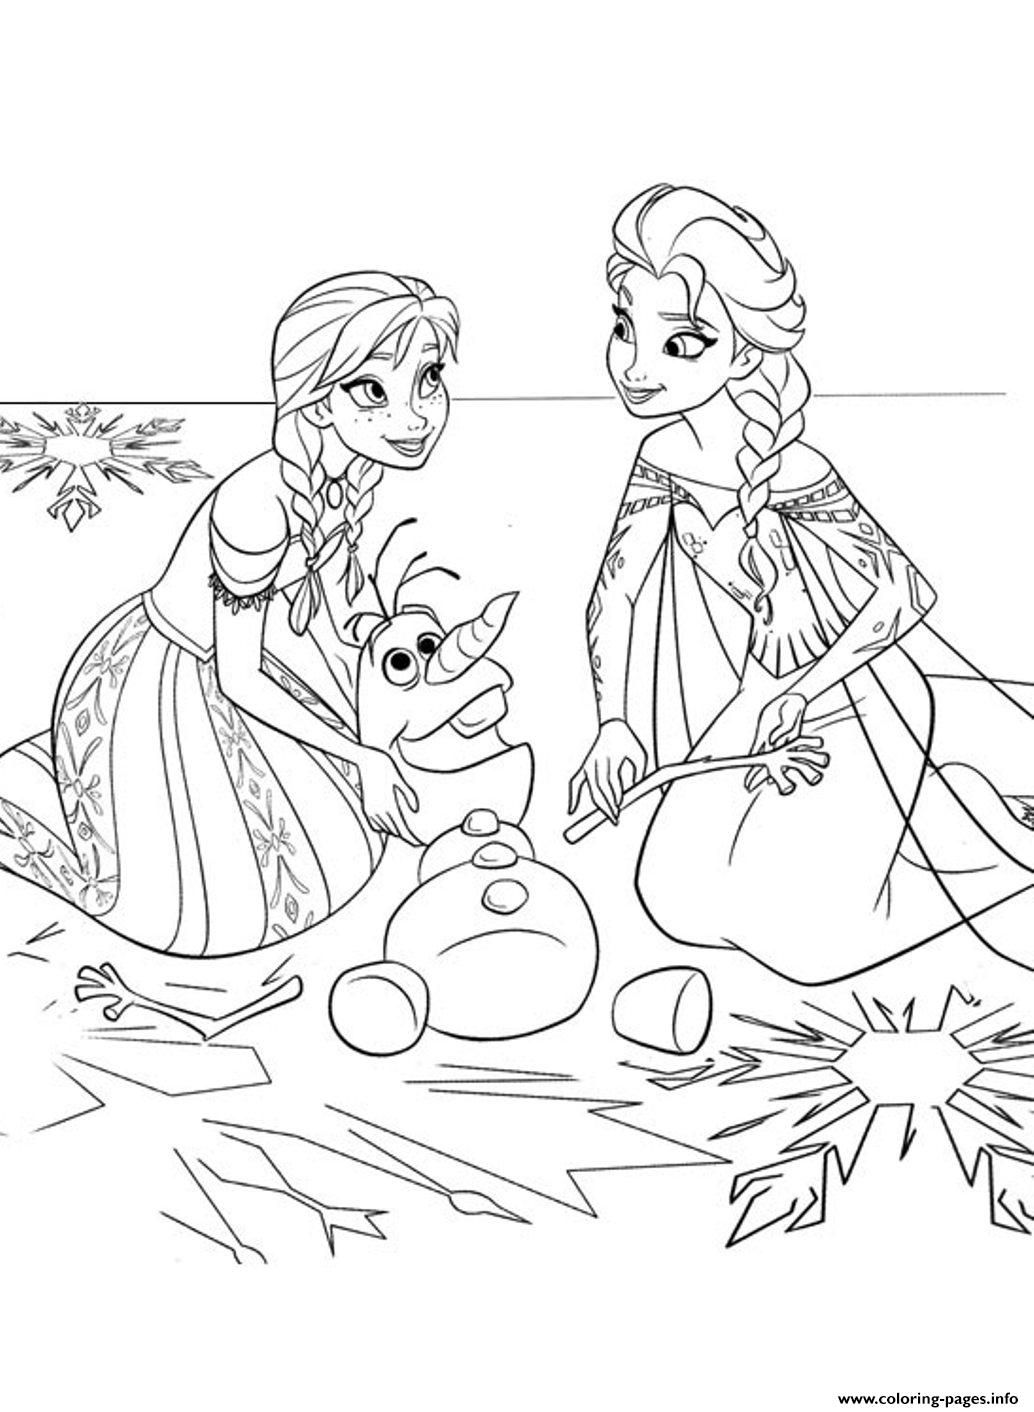 Pin By Agus Torres On Cumple 3 Oli Elsa Coloring Pages Princess Coloring Pages Frozen Coloring Pages